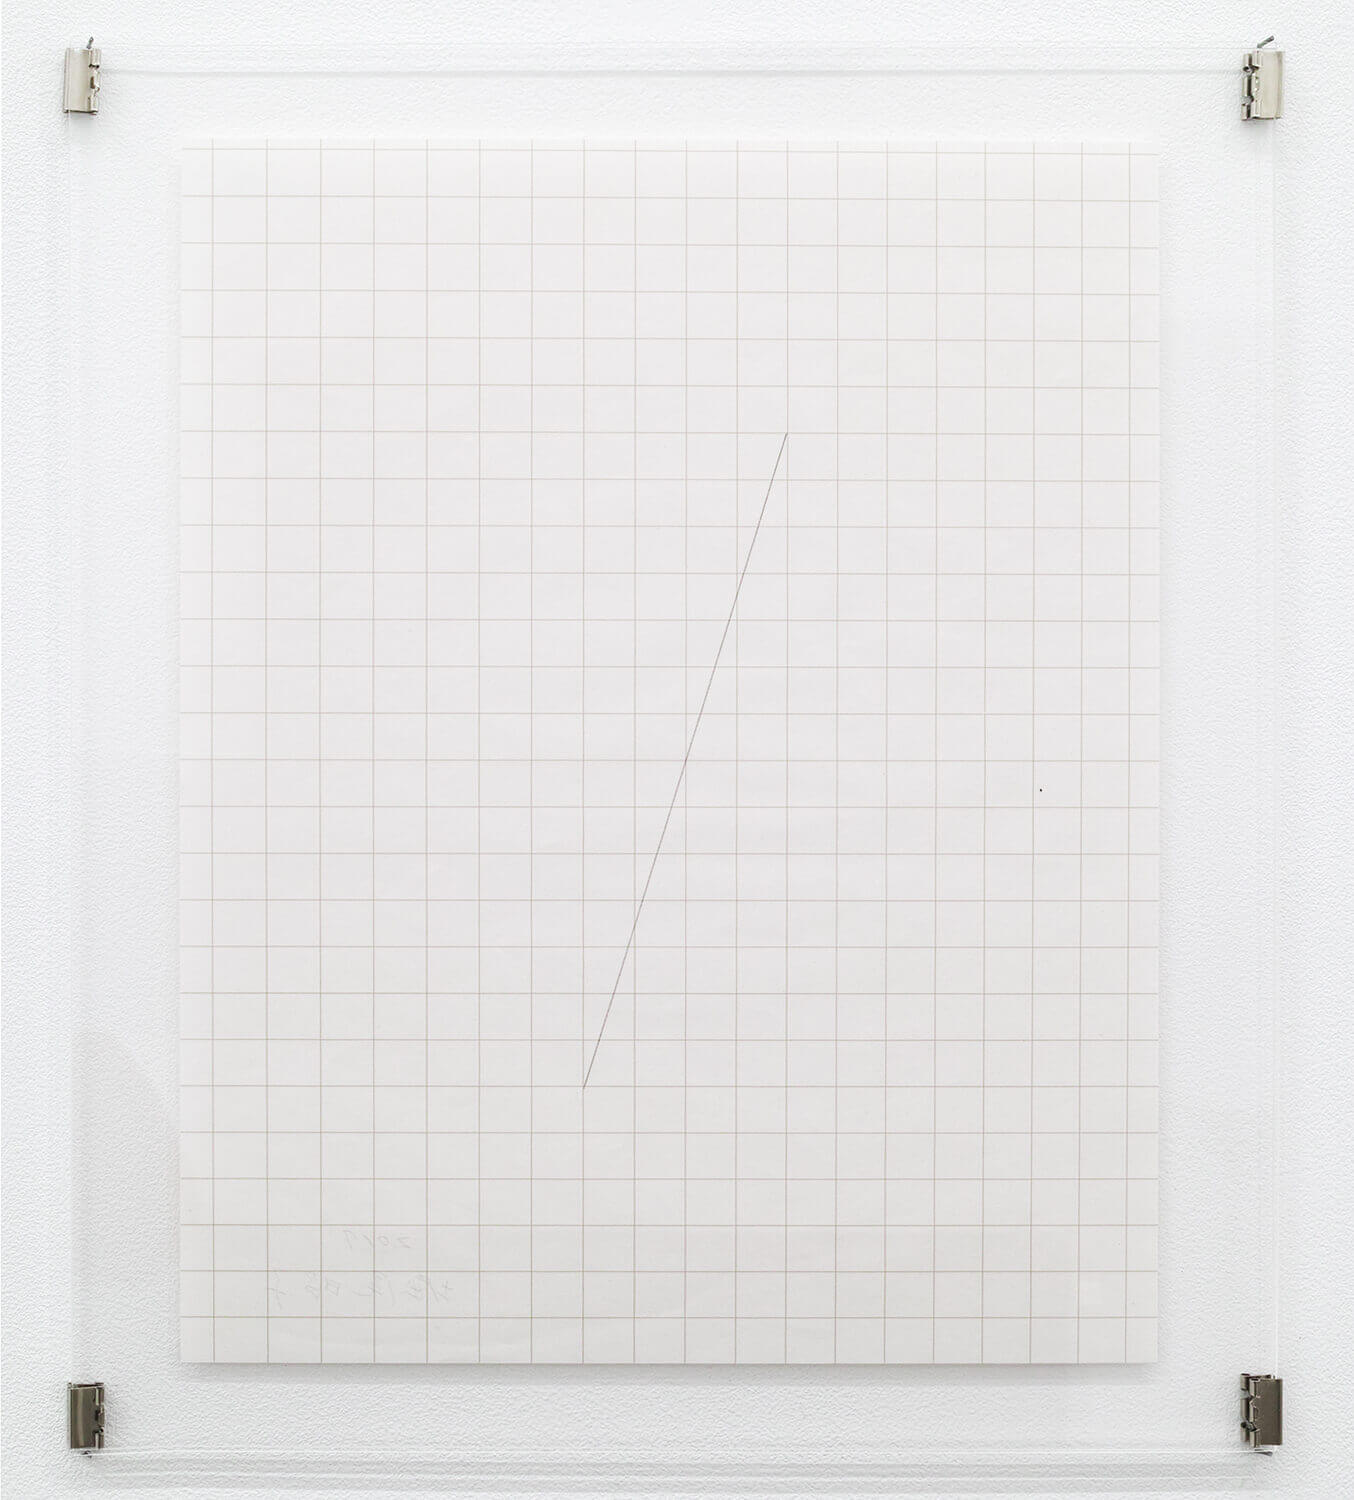 <strong>Untitled </strong><br>Pencil line, thin graph paper, acrylic plate 300 x 240 x 5 mm 2017